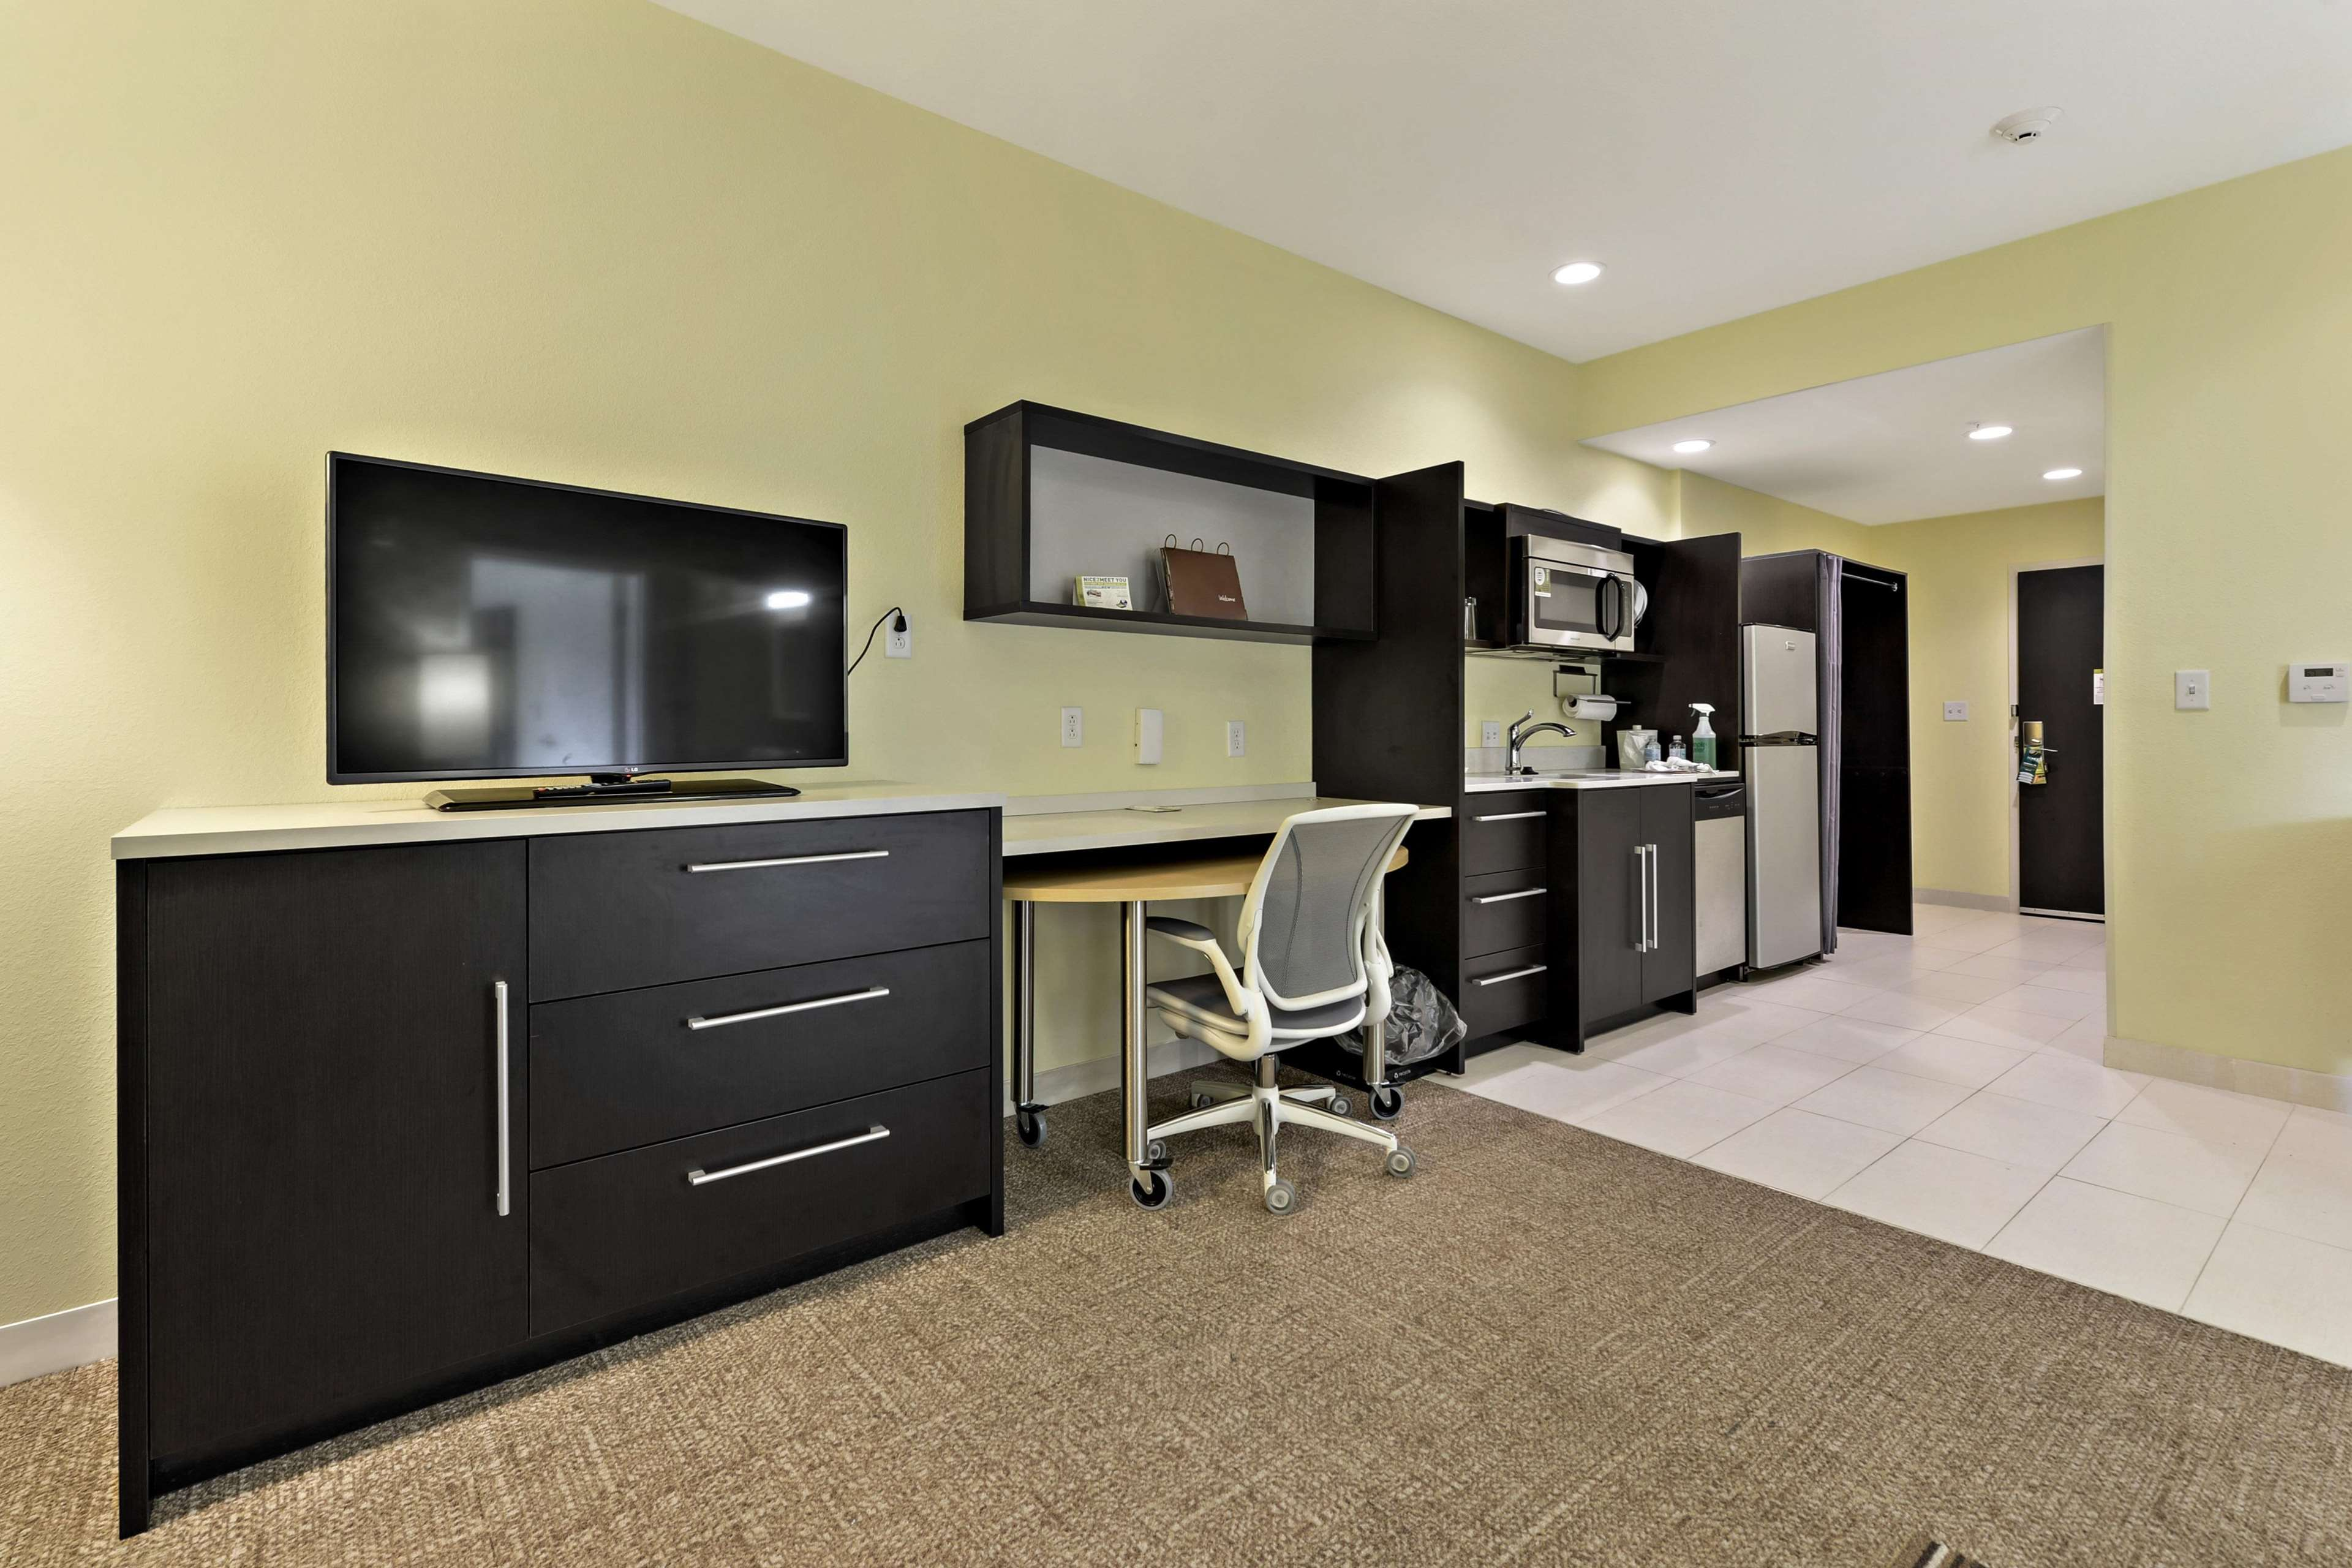 Home2 Suites by Hilton Gulfport I-10 image 24